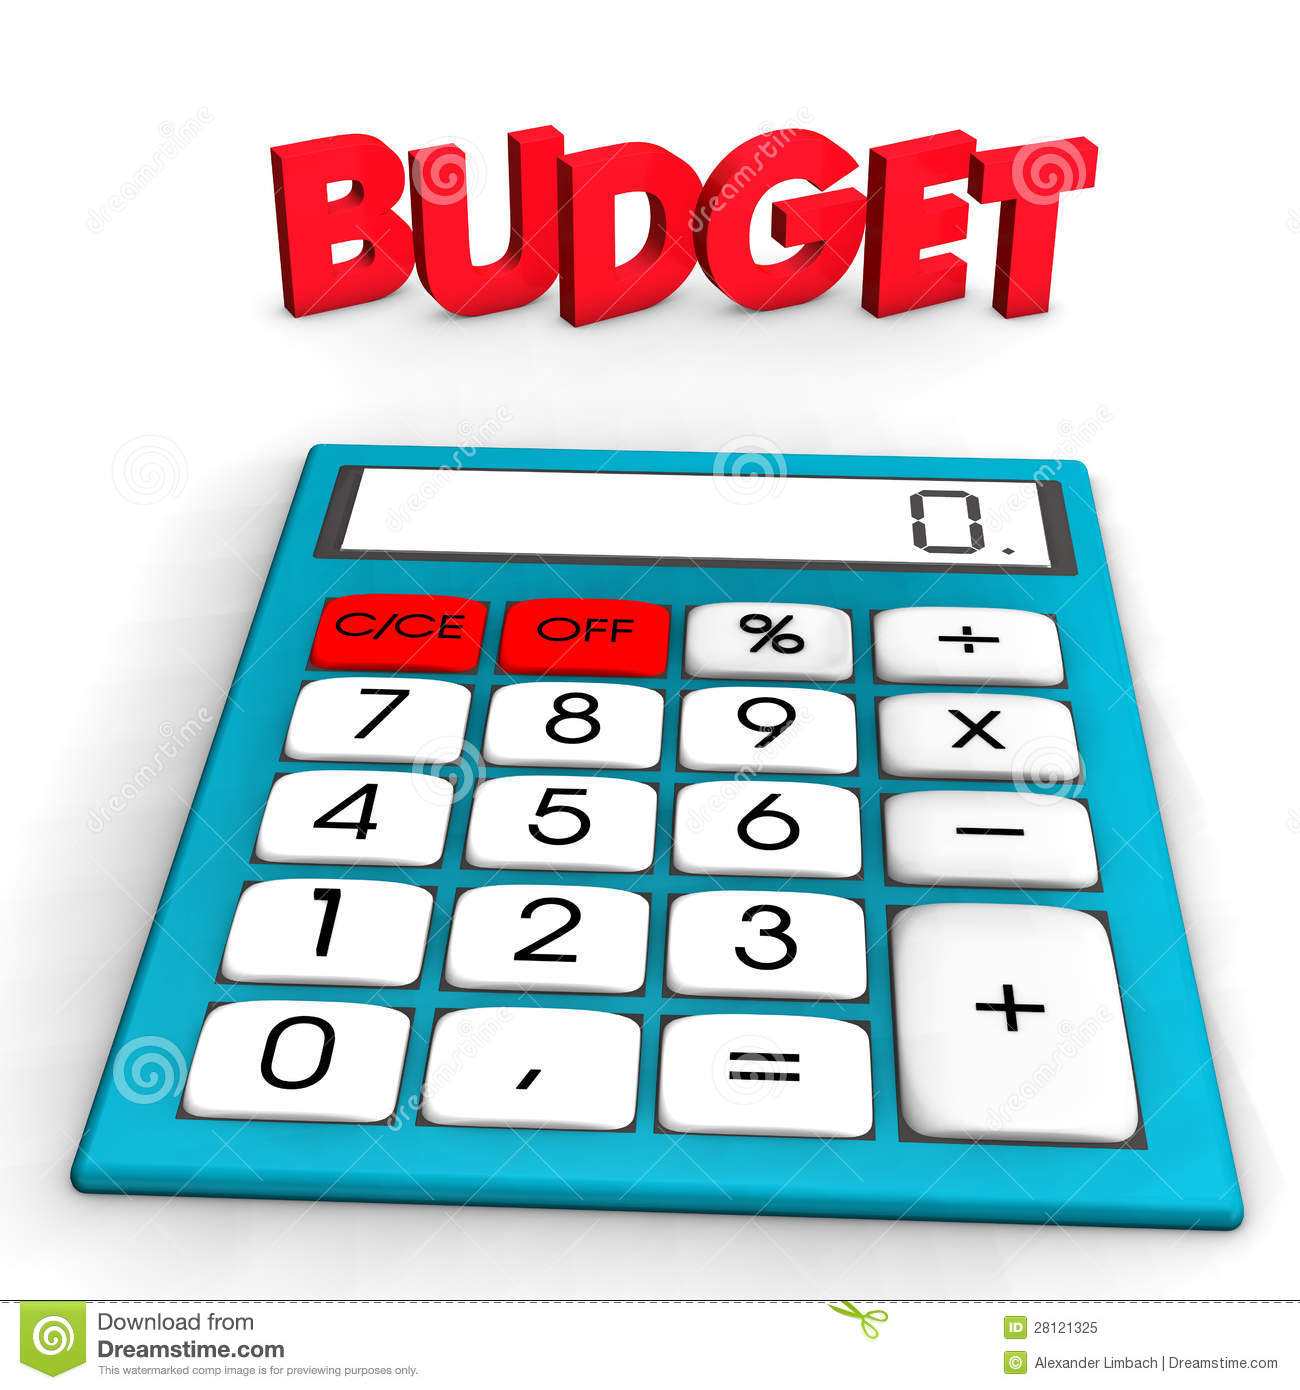 Budget Calculator Royalty Free Stock Photo - Image: 28121325